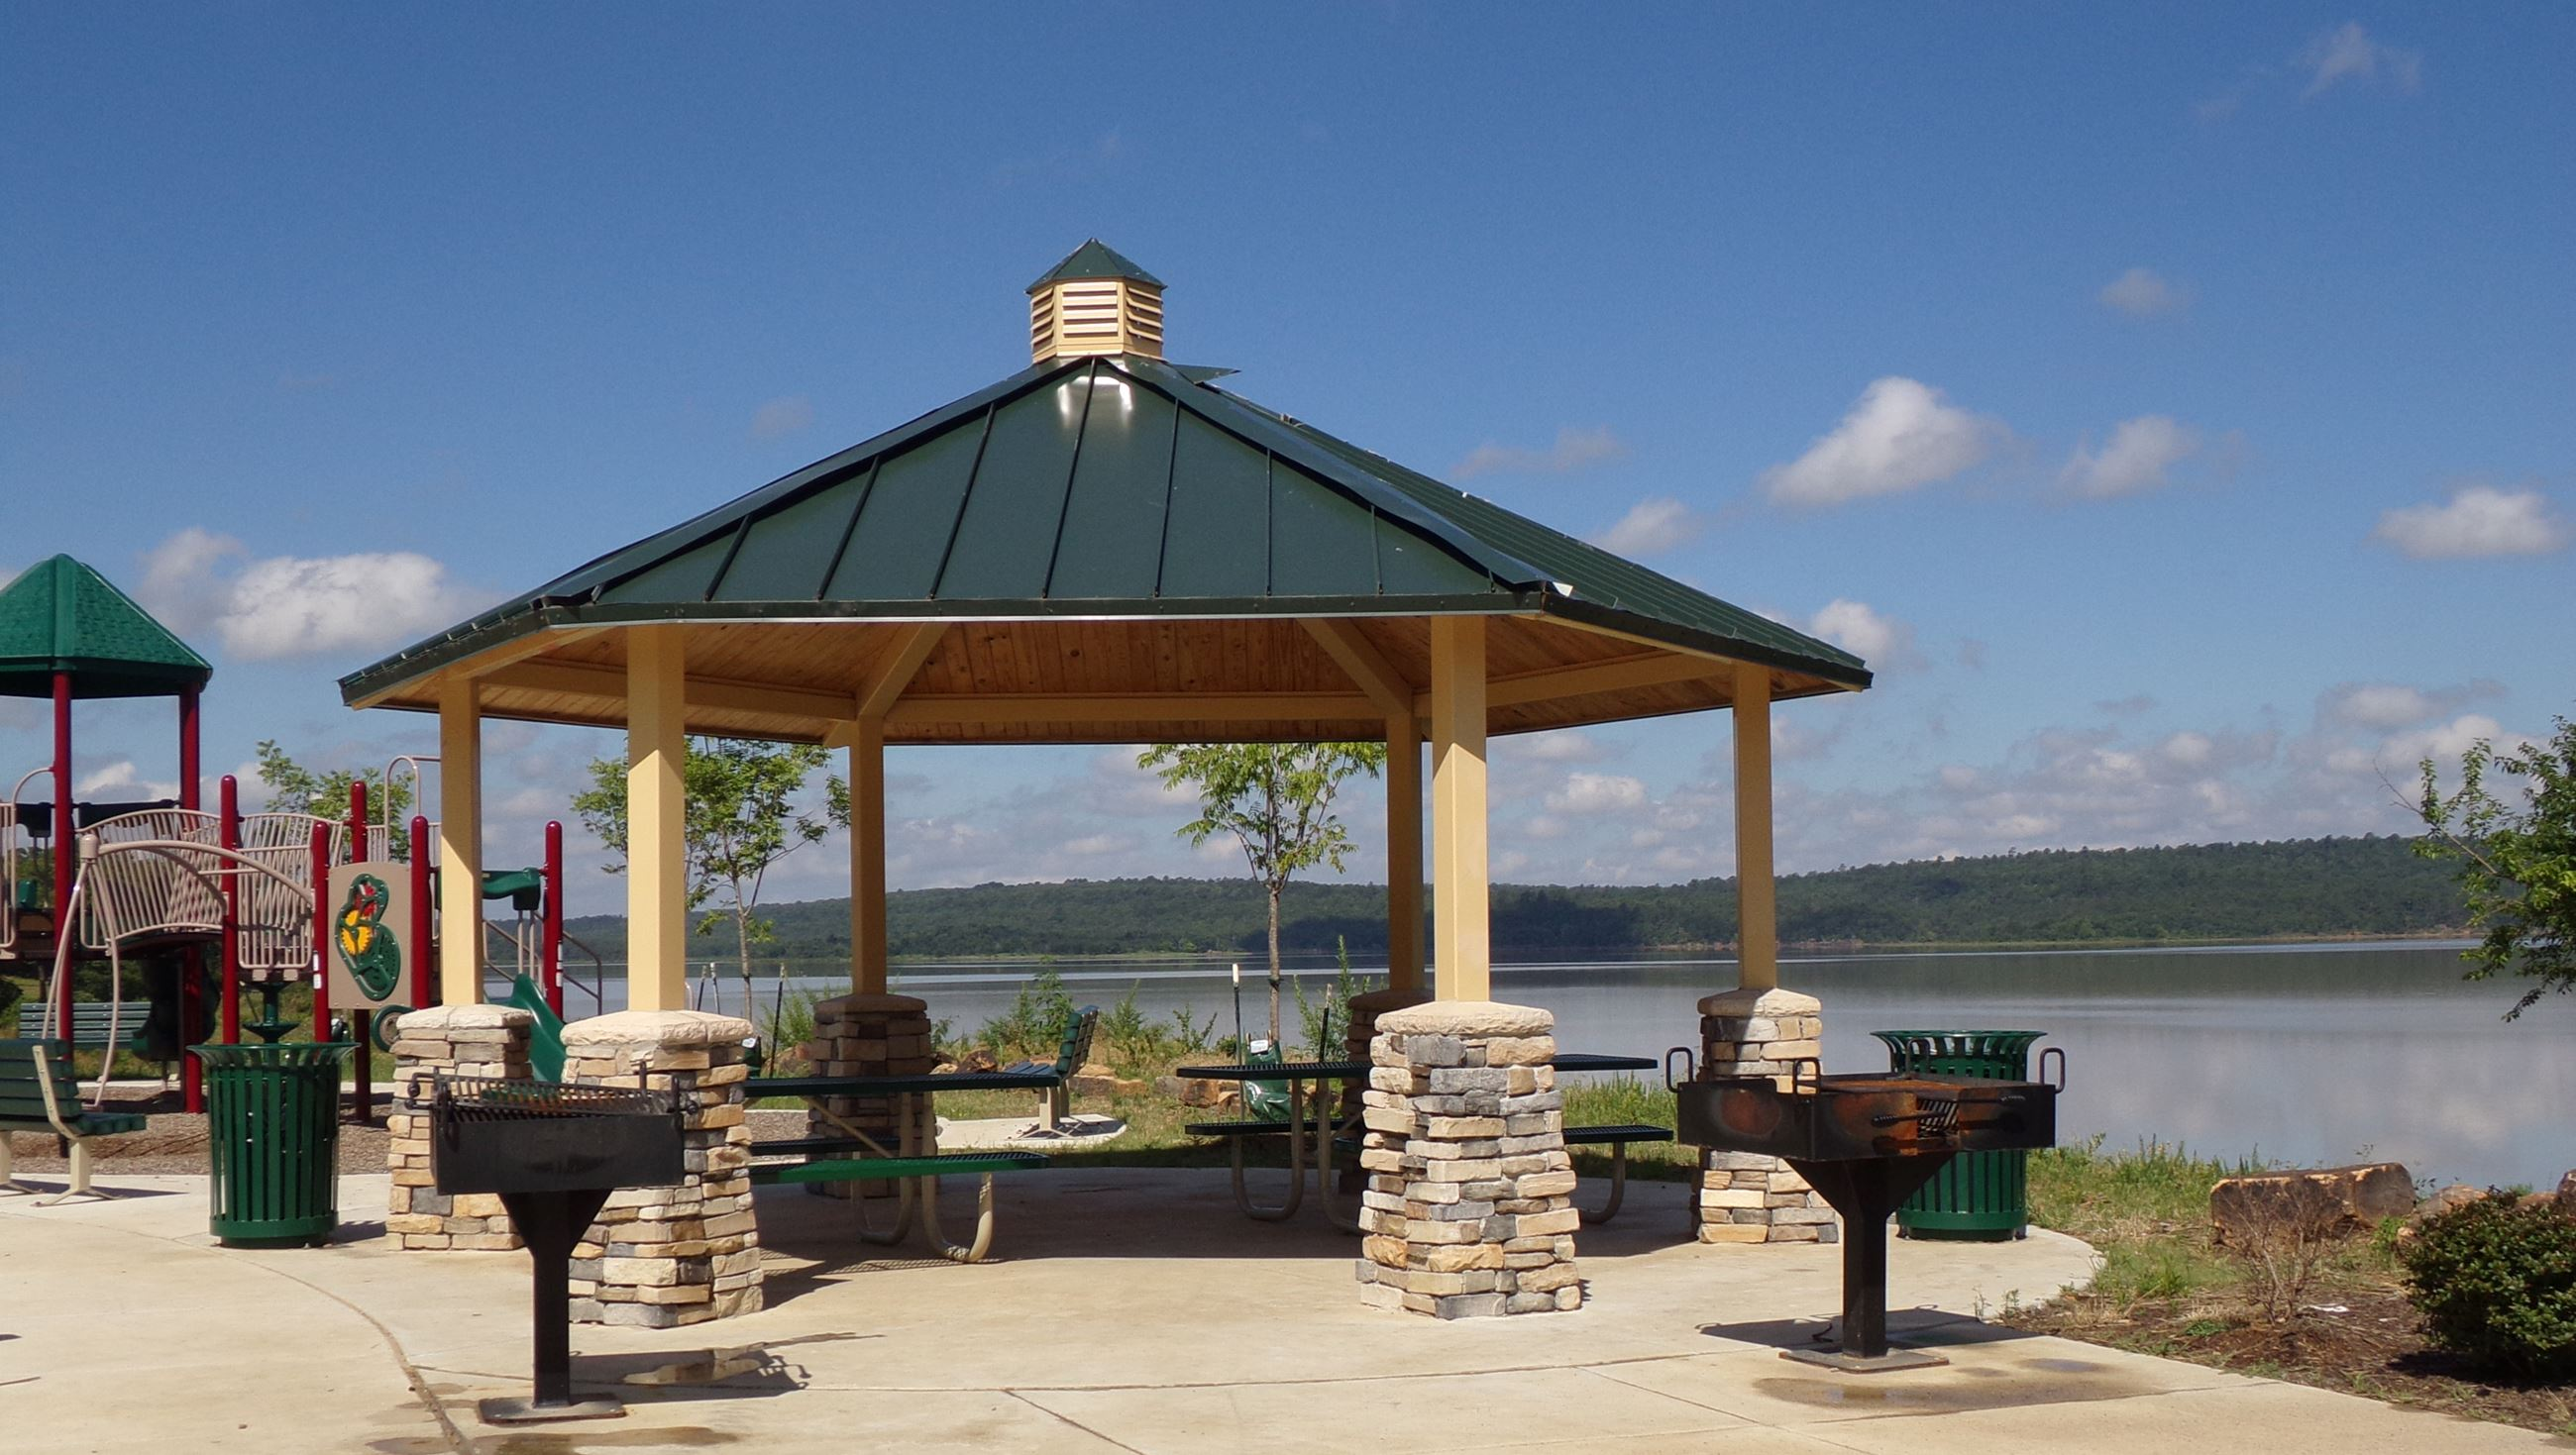 Pavilion at Atoka Lake